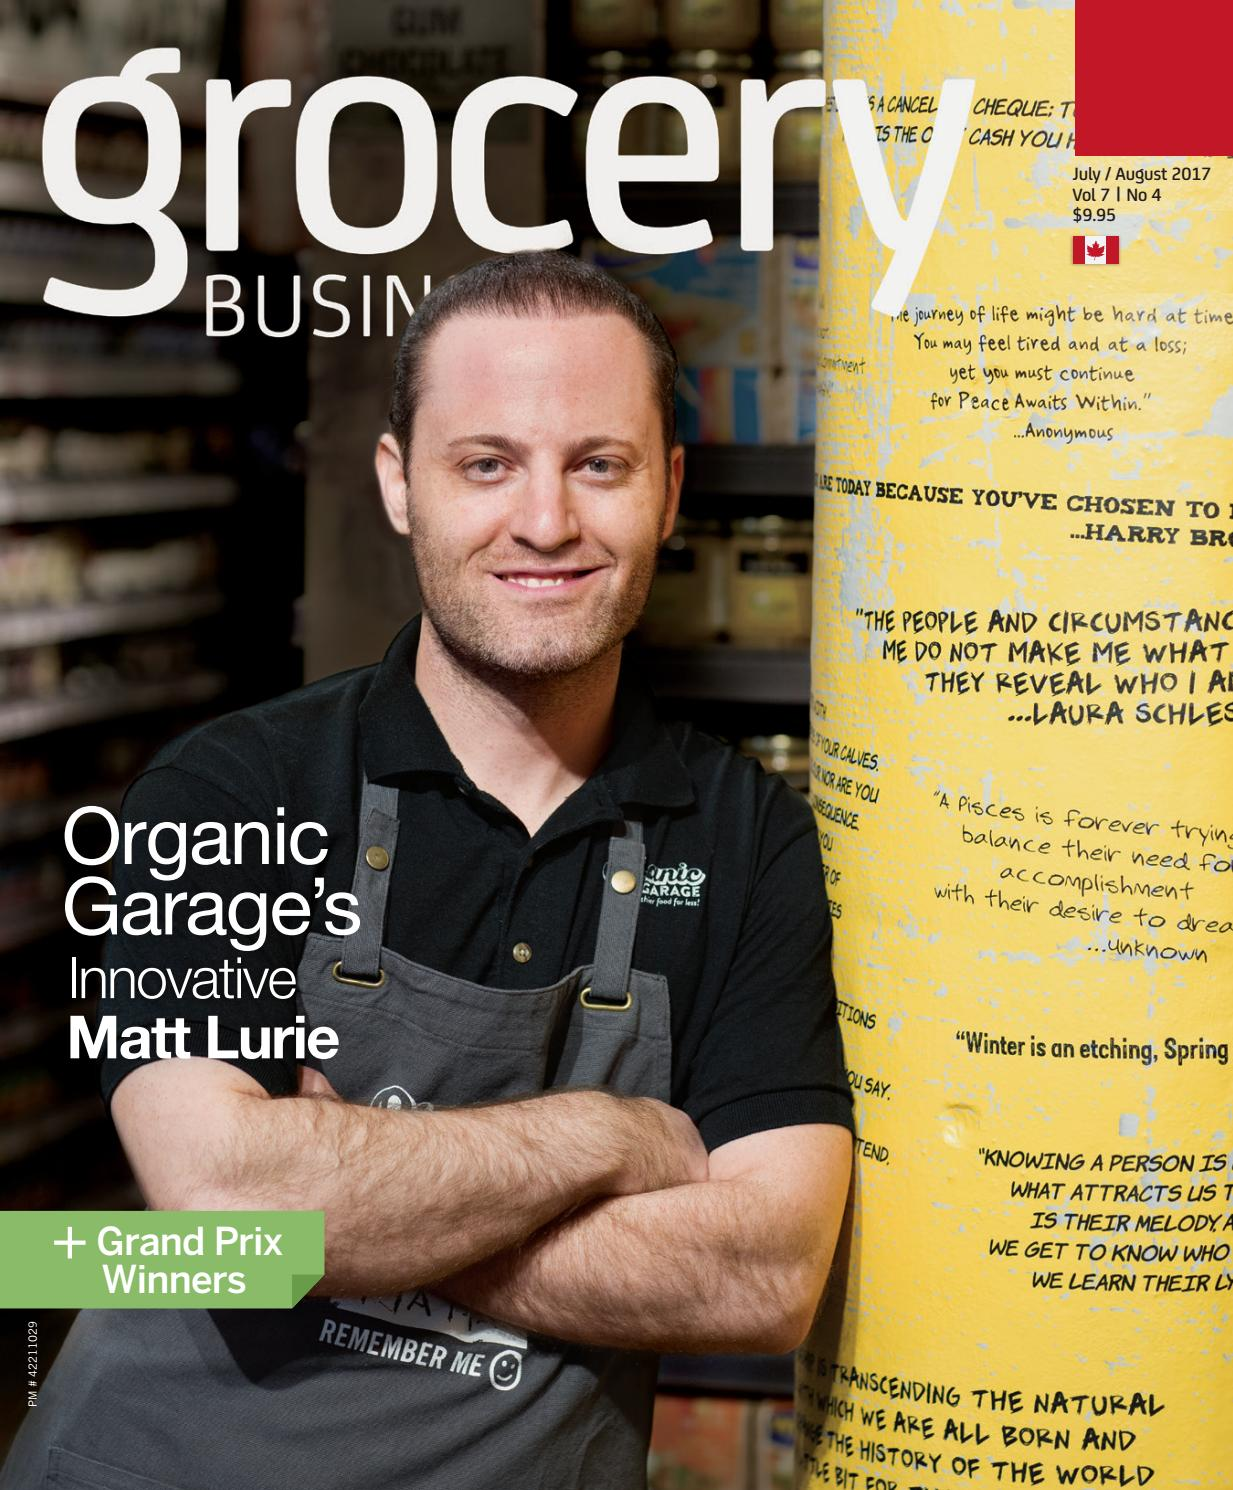 Bernadette Penotti july/august 2017grocery business - issuu